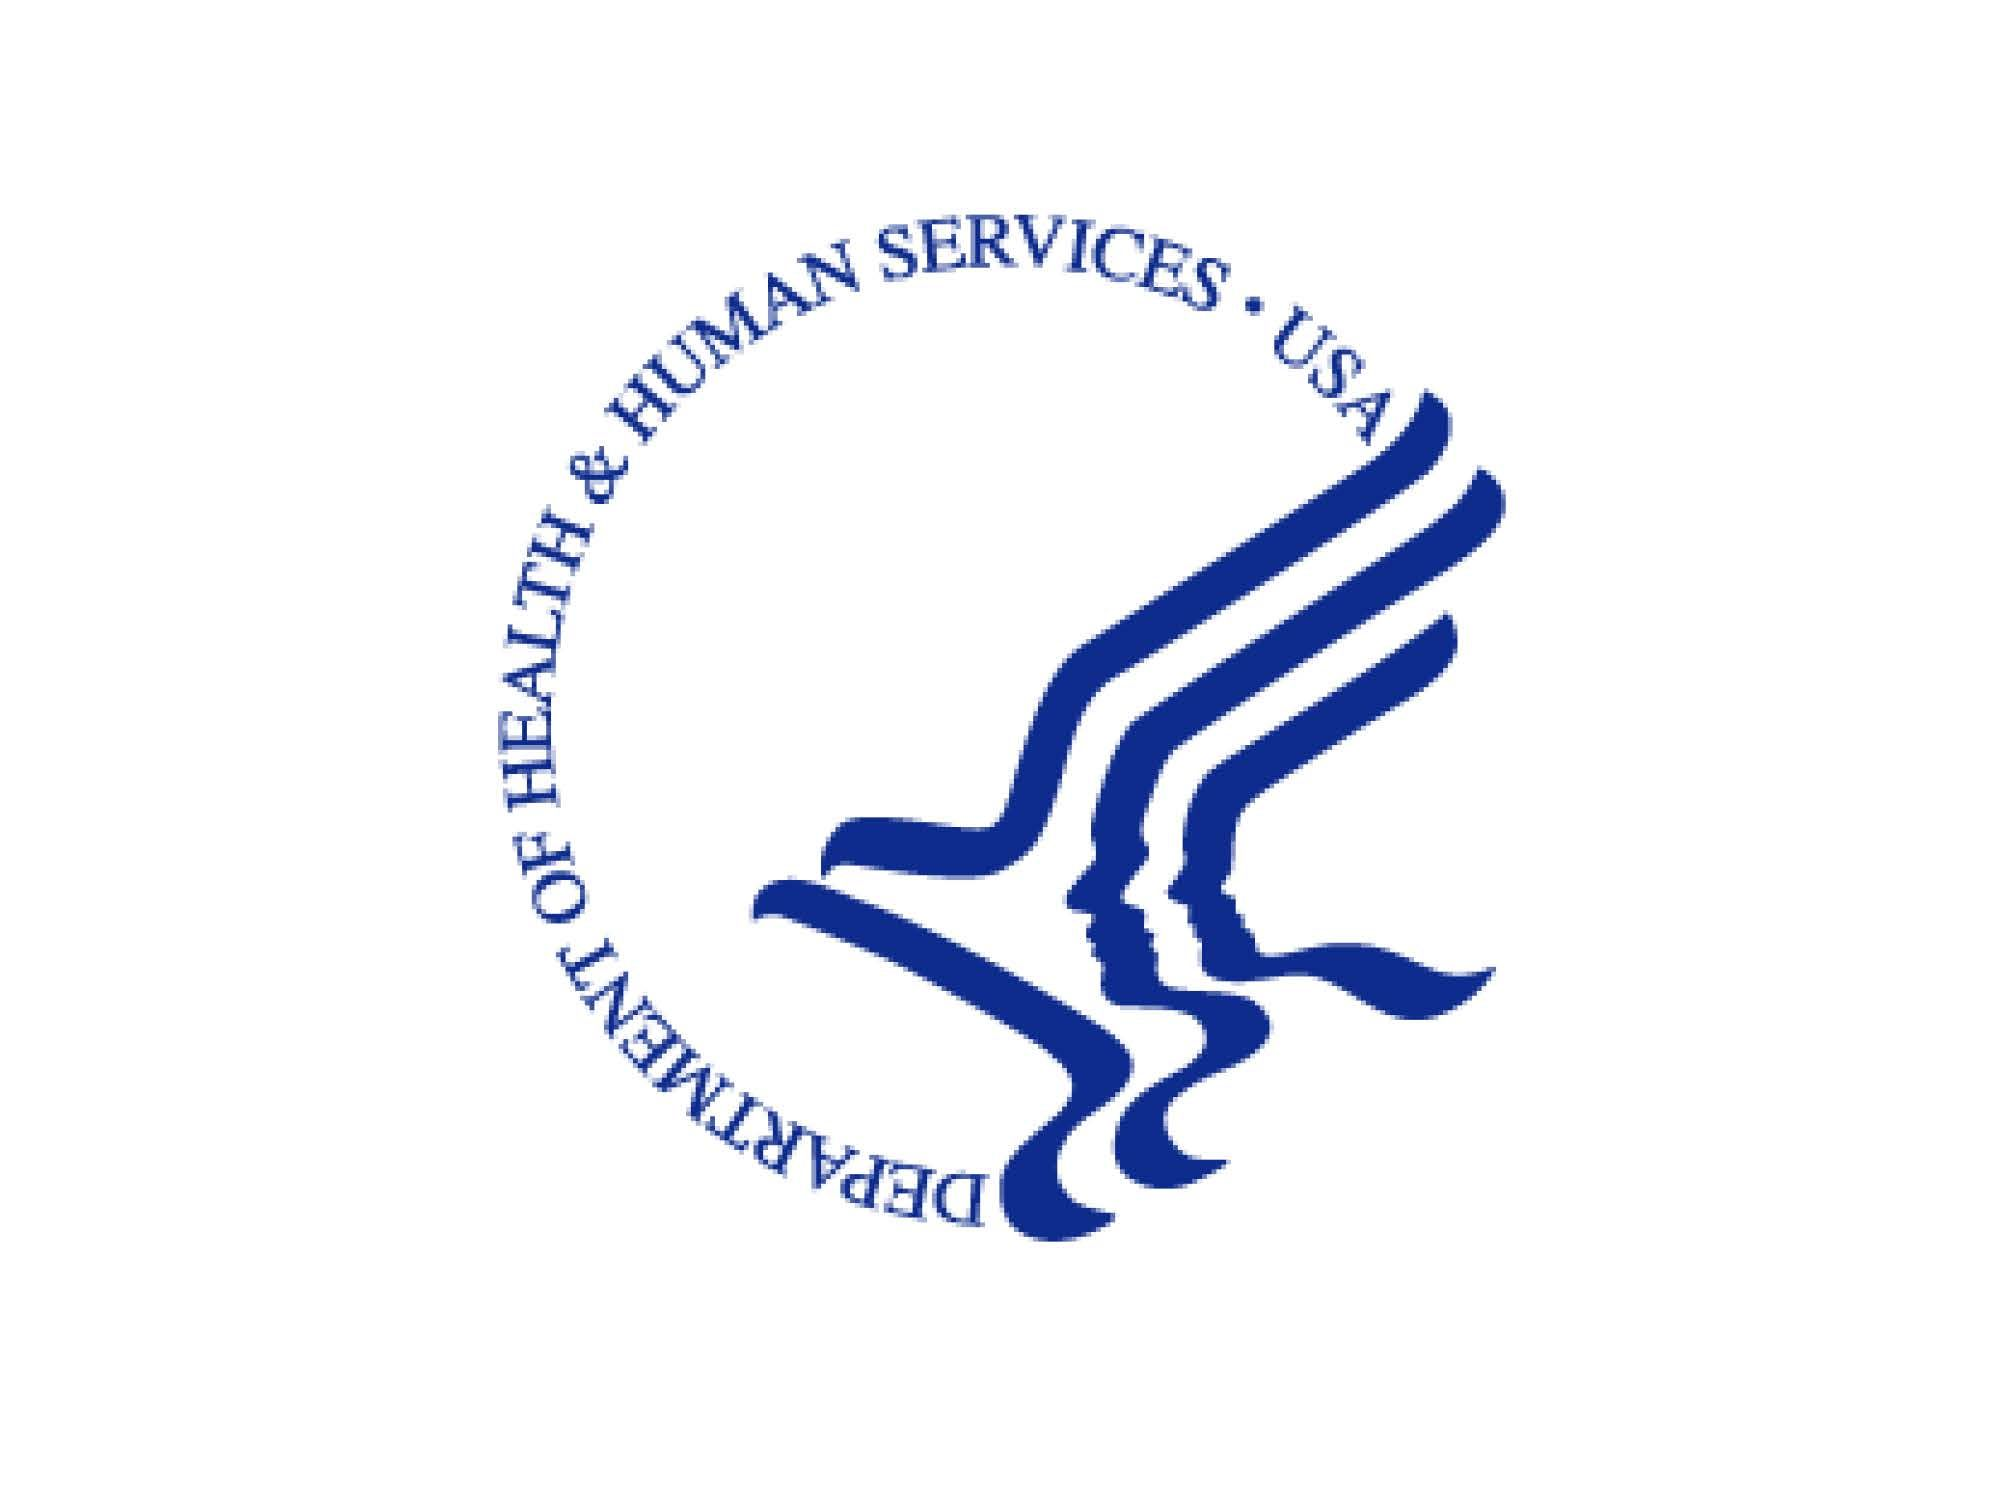 The Department of Health and Human Services (HHS) is the ...